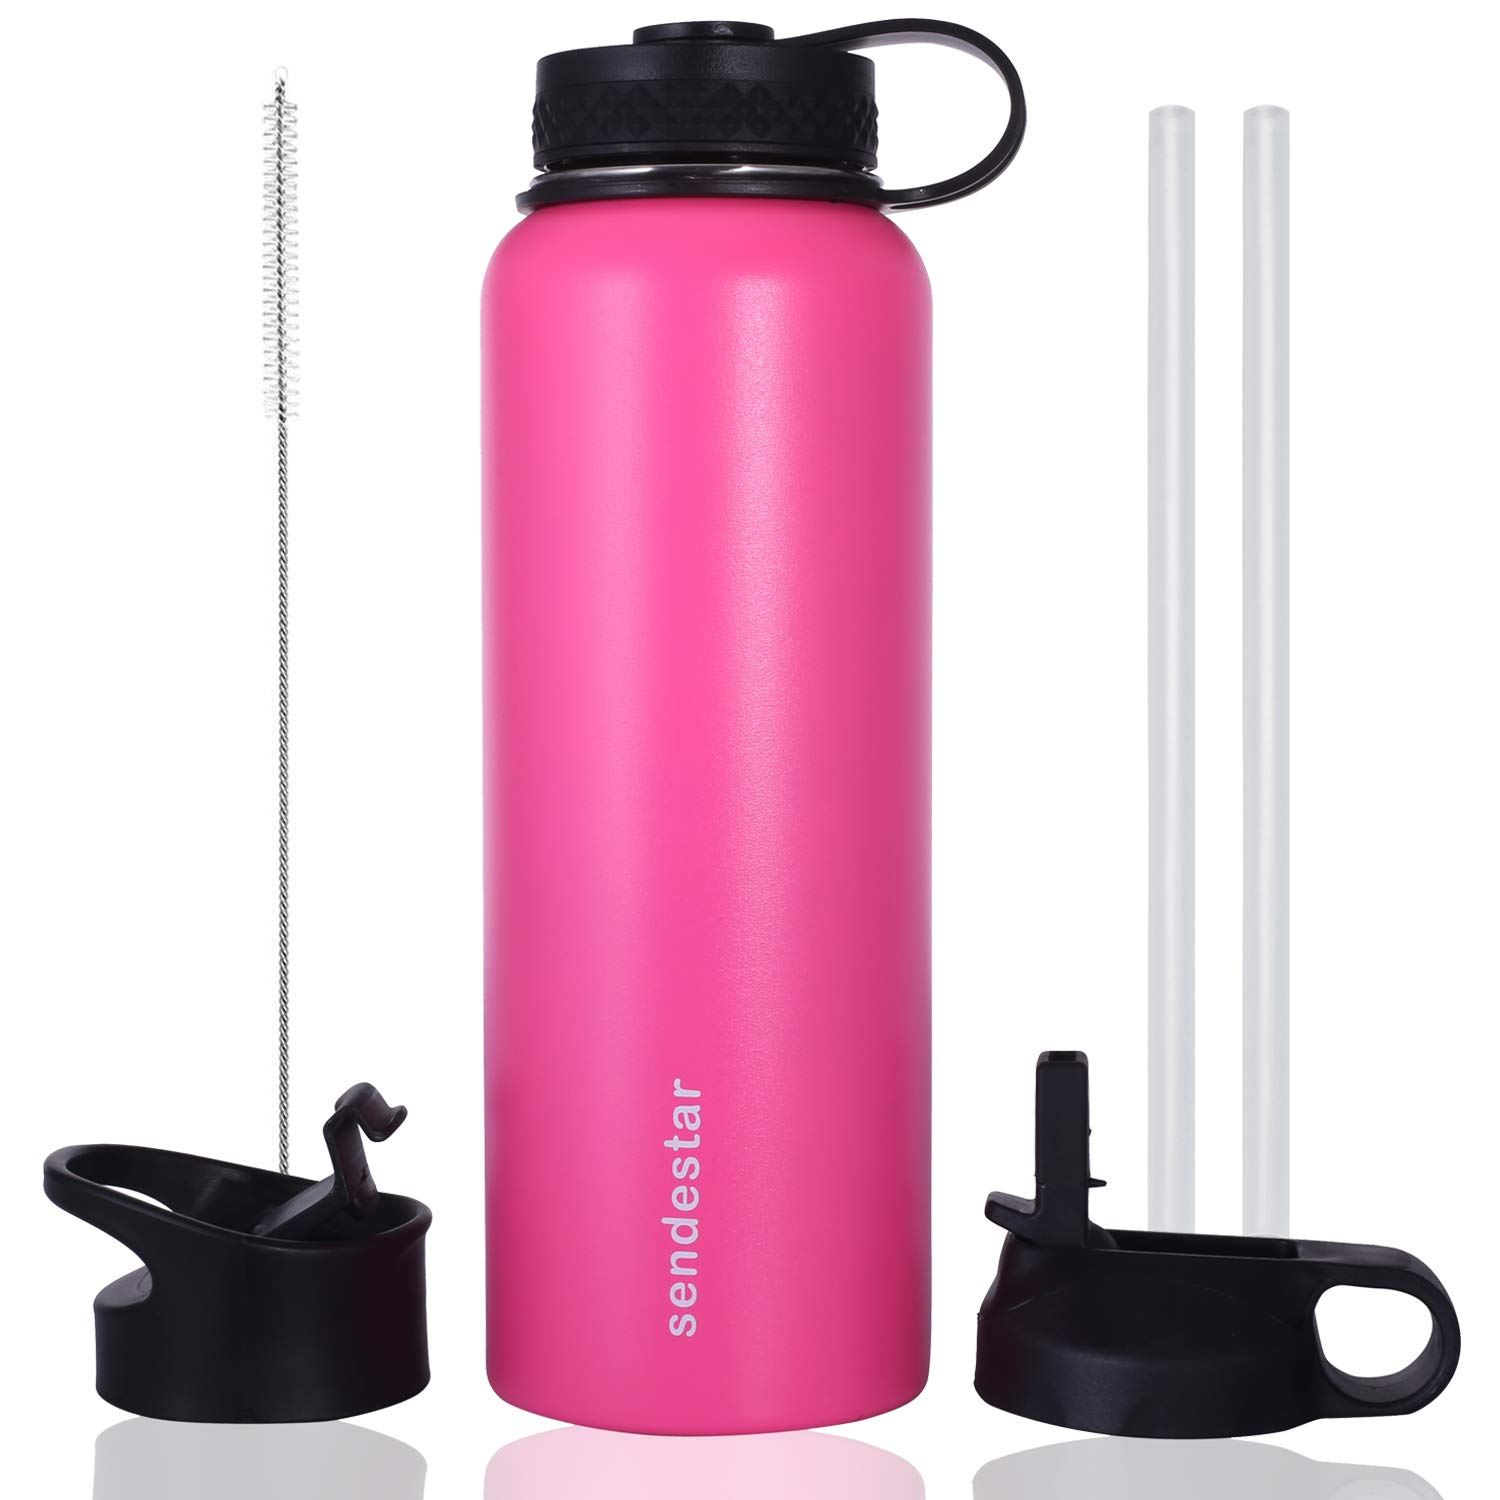 Sendestar 32 oz Double Wall Vacuum Insulated Leak Proof Stainless Steel Sports Water Bottle—Wide Mouth with Straw Lid & Flat Cap & Flip Lid (Pink) by Sendestar